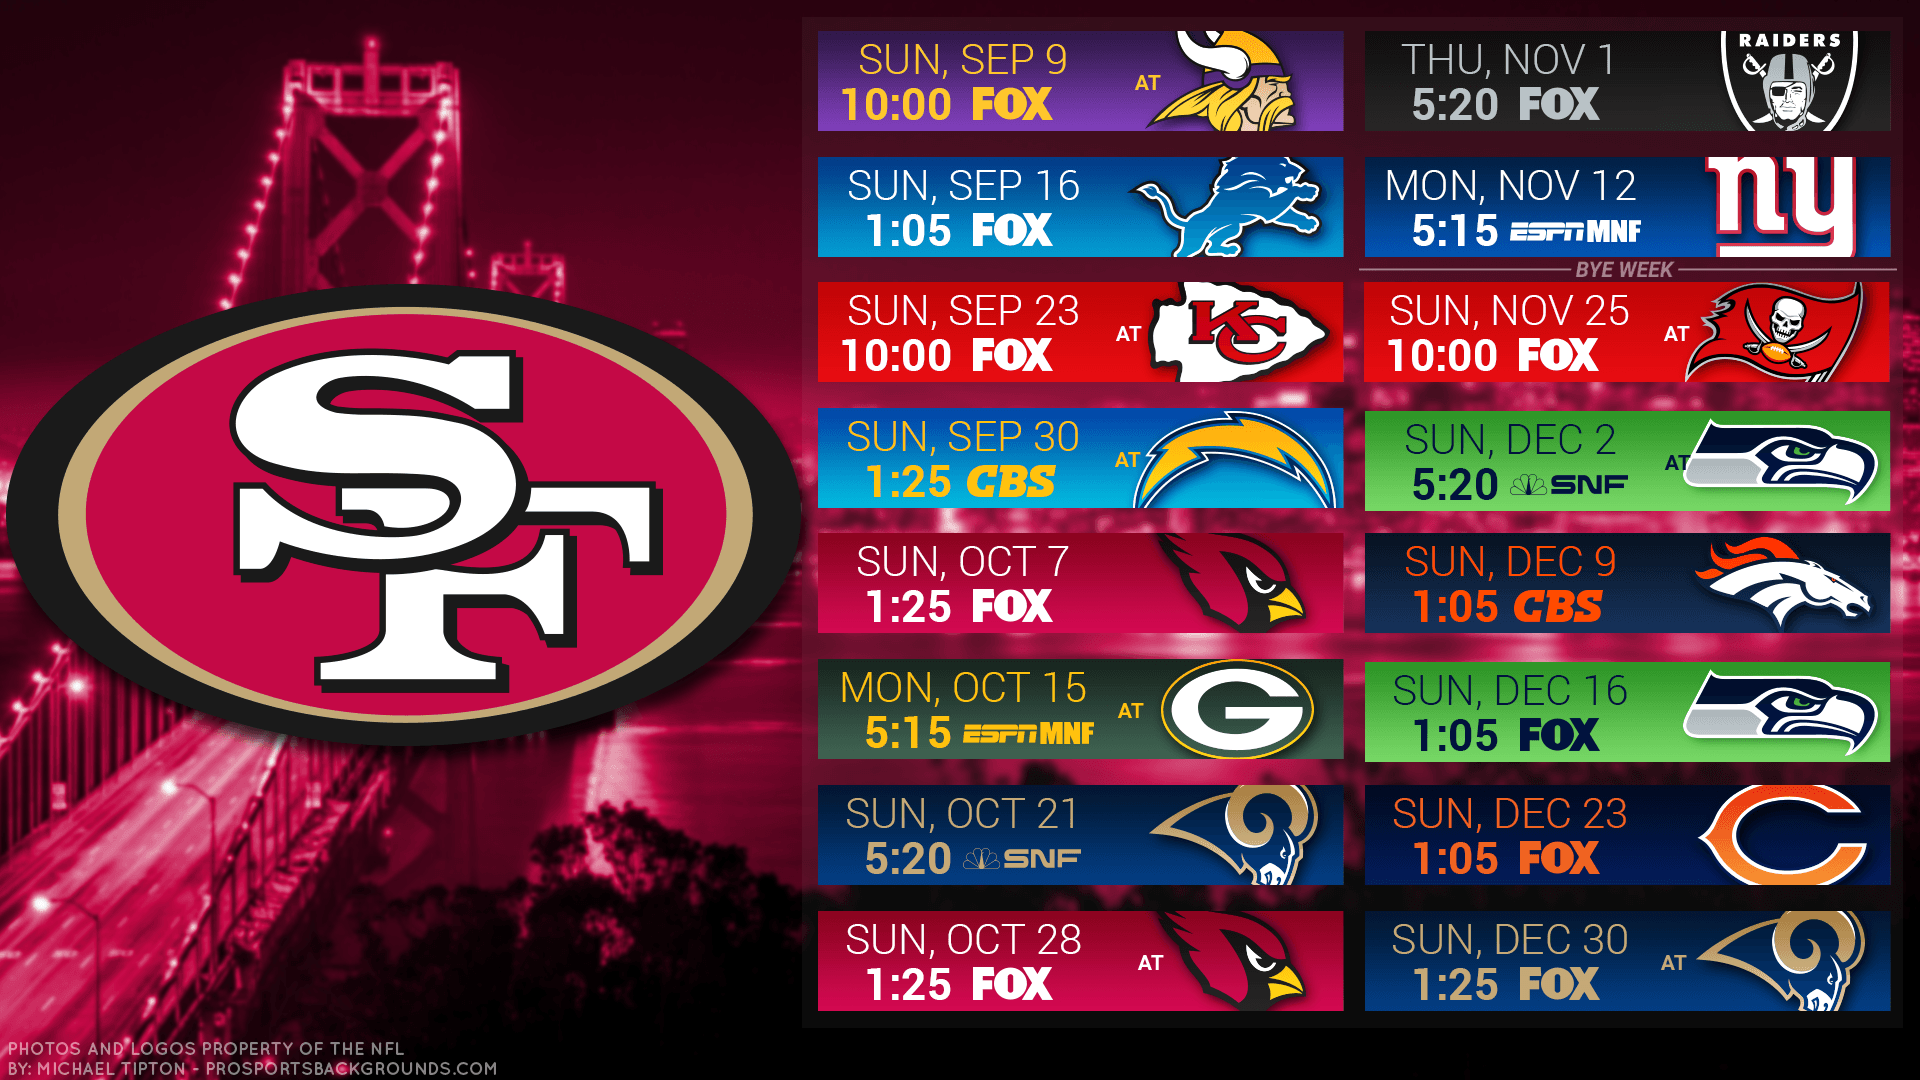 Adorable image with regard to 49ers printable schedule